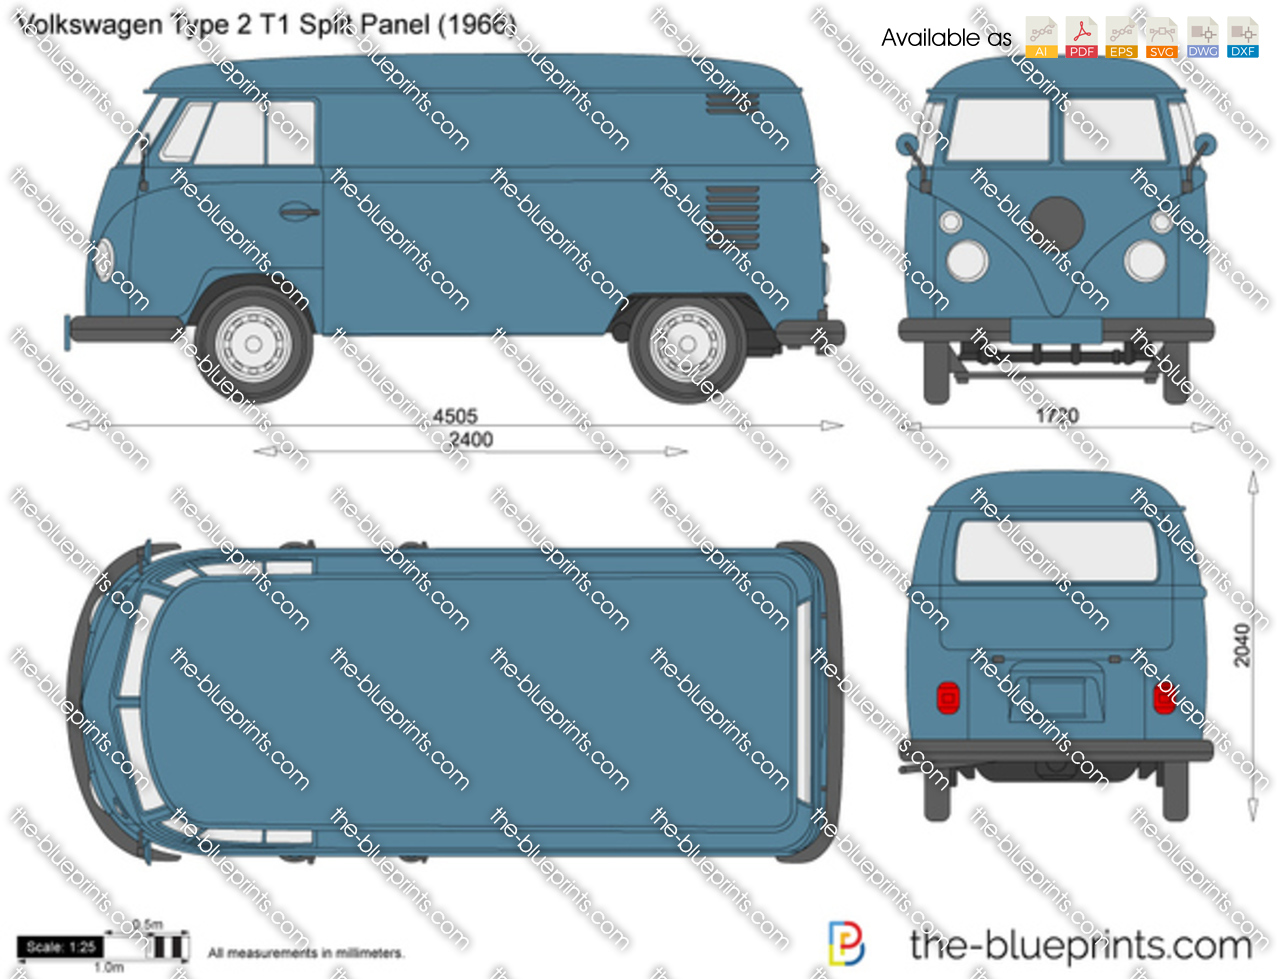 1957 Volkswagen Type 2 T1 Split Panel